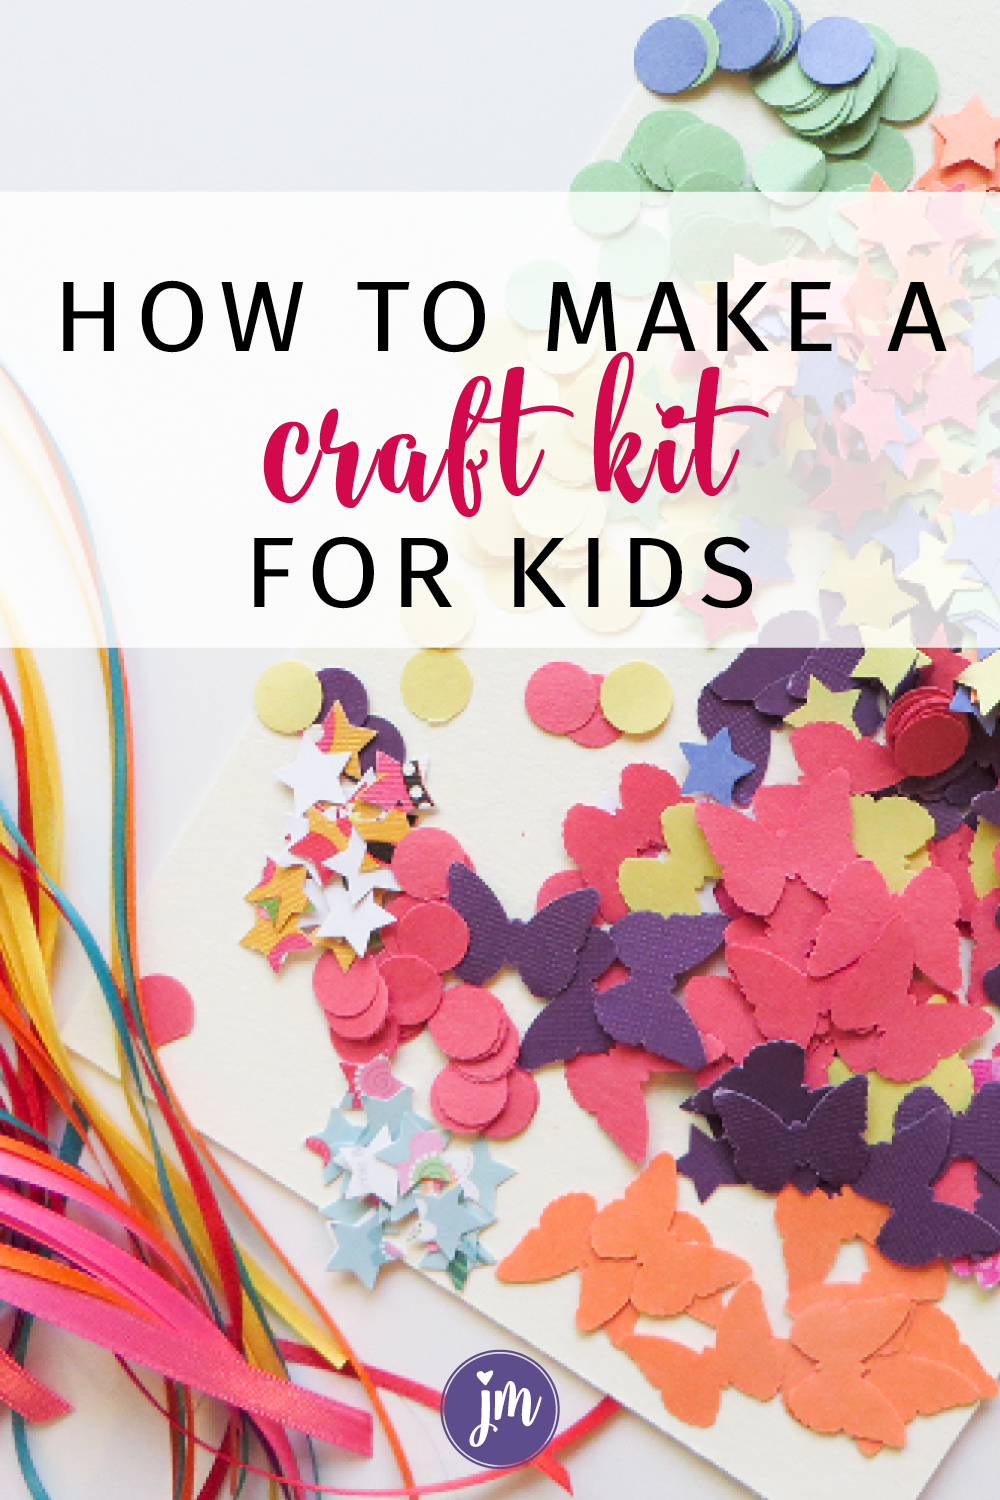 I'm a big fan of craft kits because you can customize them to the individual and DIYing your own is less expensive than buying them premade too! I share how I made a craft kit for my nieces and nephew and give tips for making your own unique gift. #craftsforkids